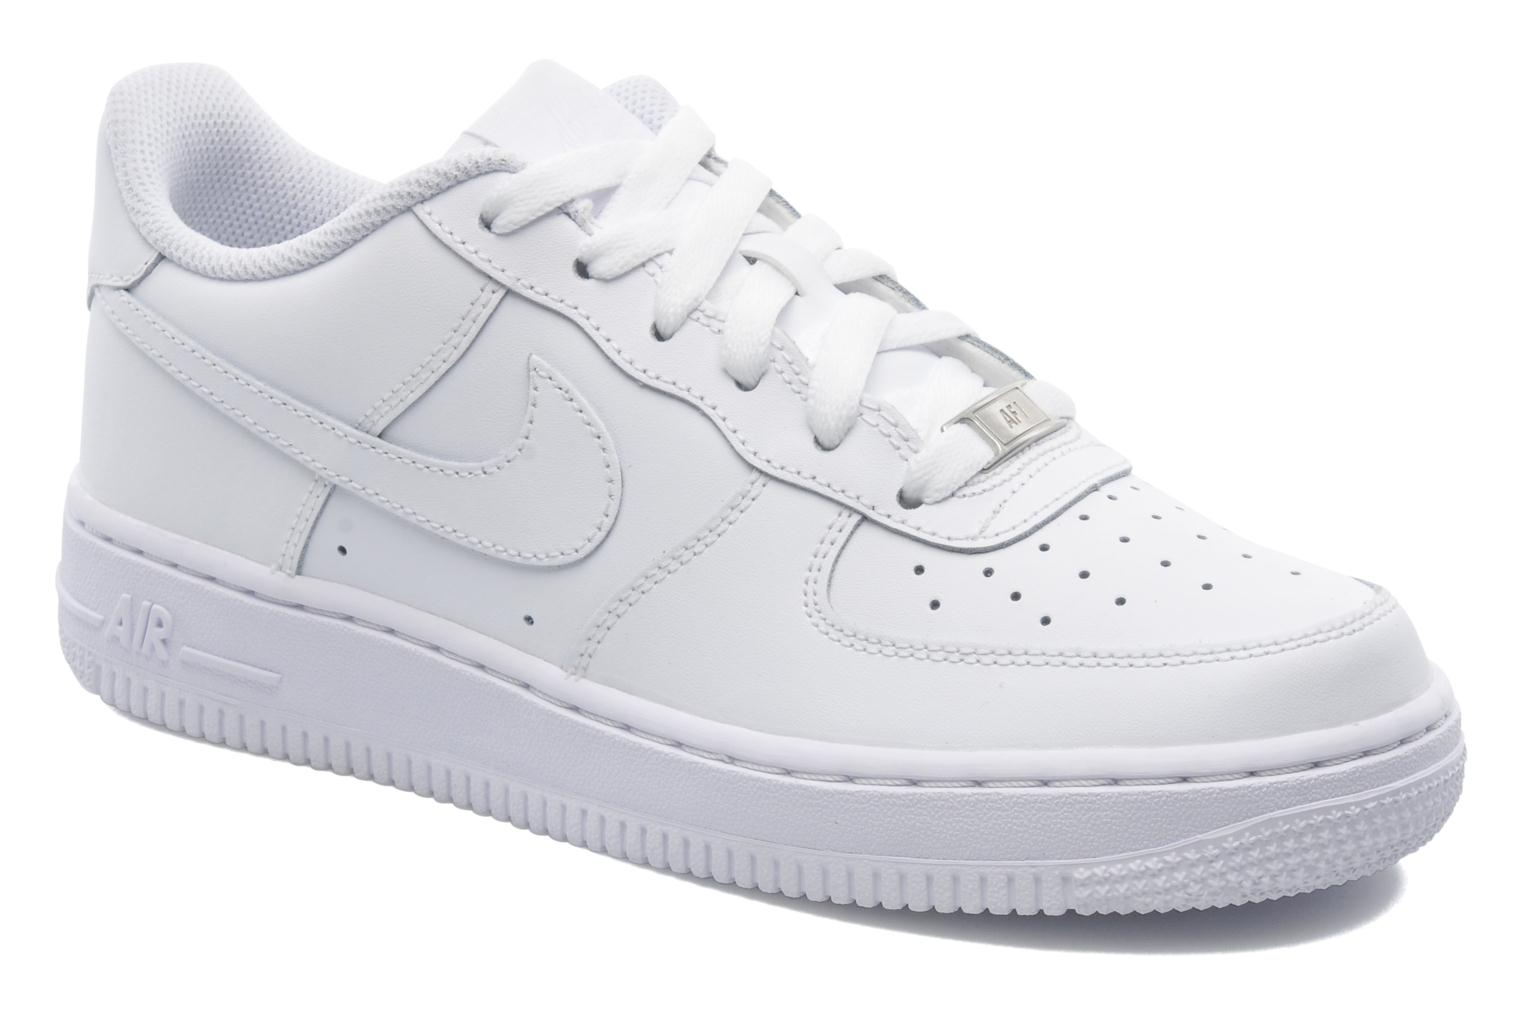 Gs Sneakers Nike Chez Wfbne4q Air 1 319795 Sarenza Bianco Force Tnwqa